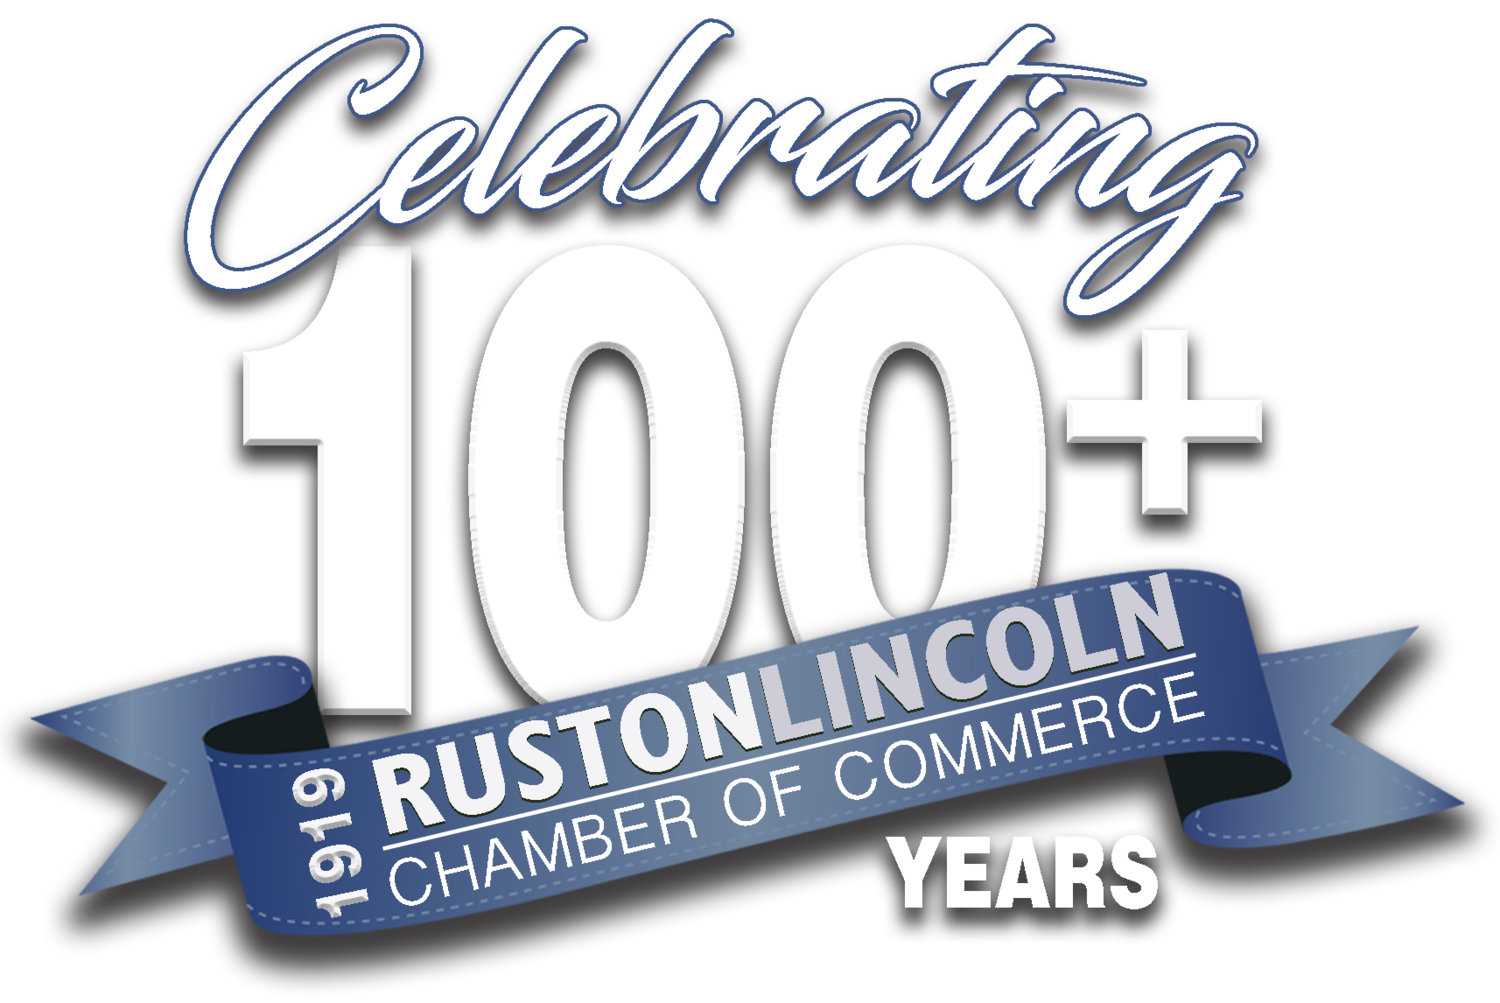 Ruston-Lincoln Chamber of Commerce